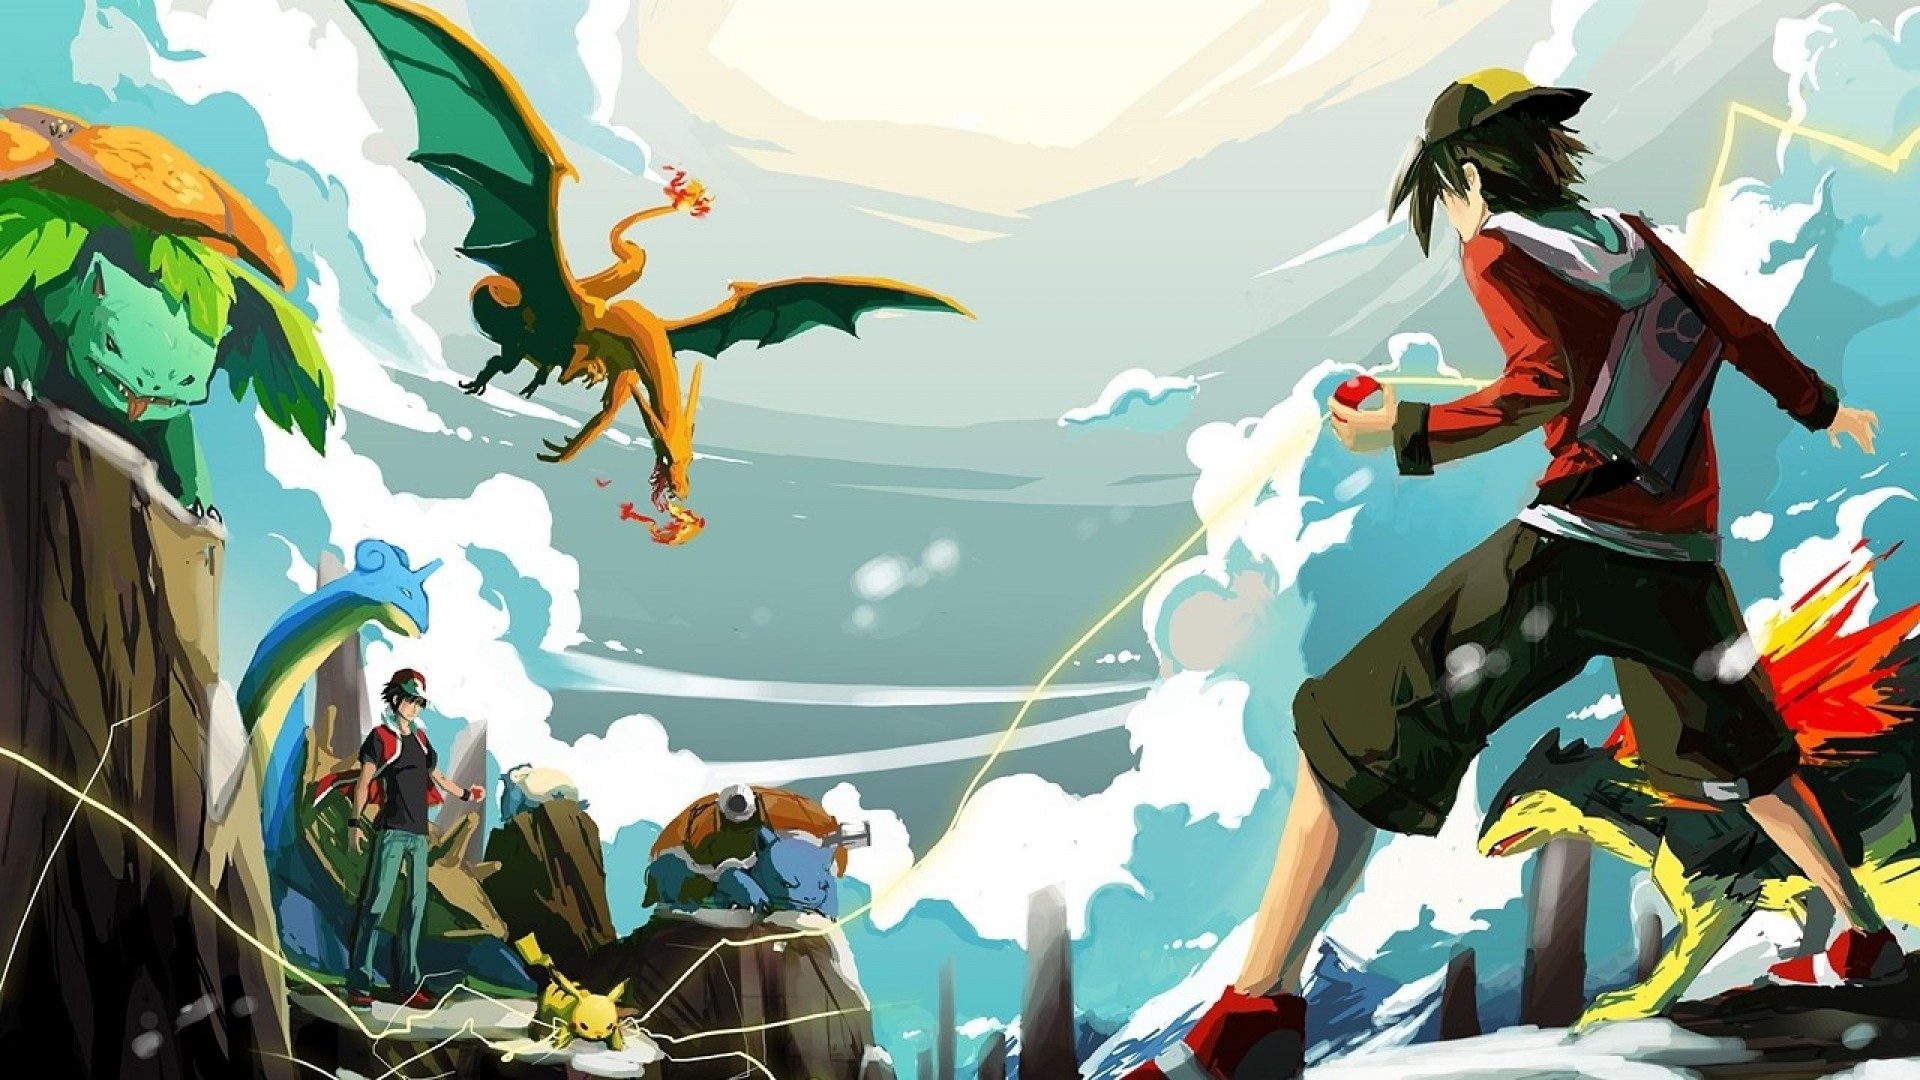 Pokemon Wallpaper Widescreen Legendary